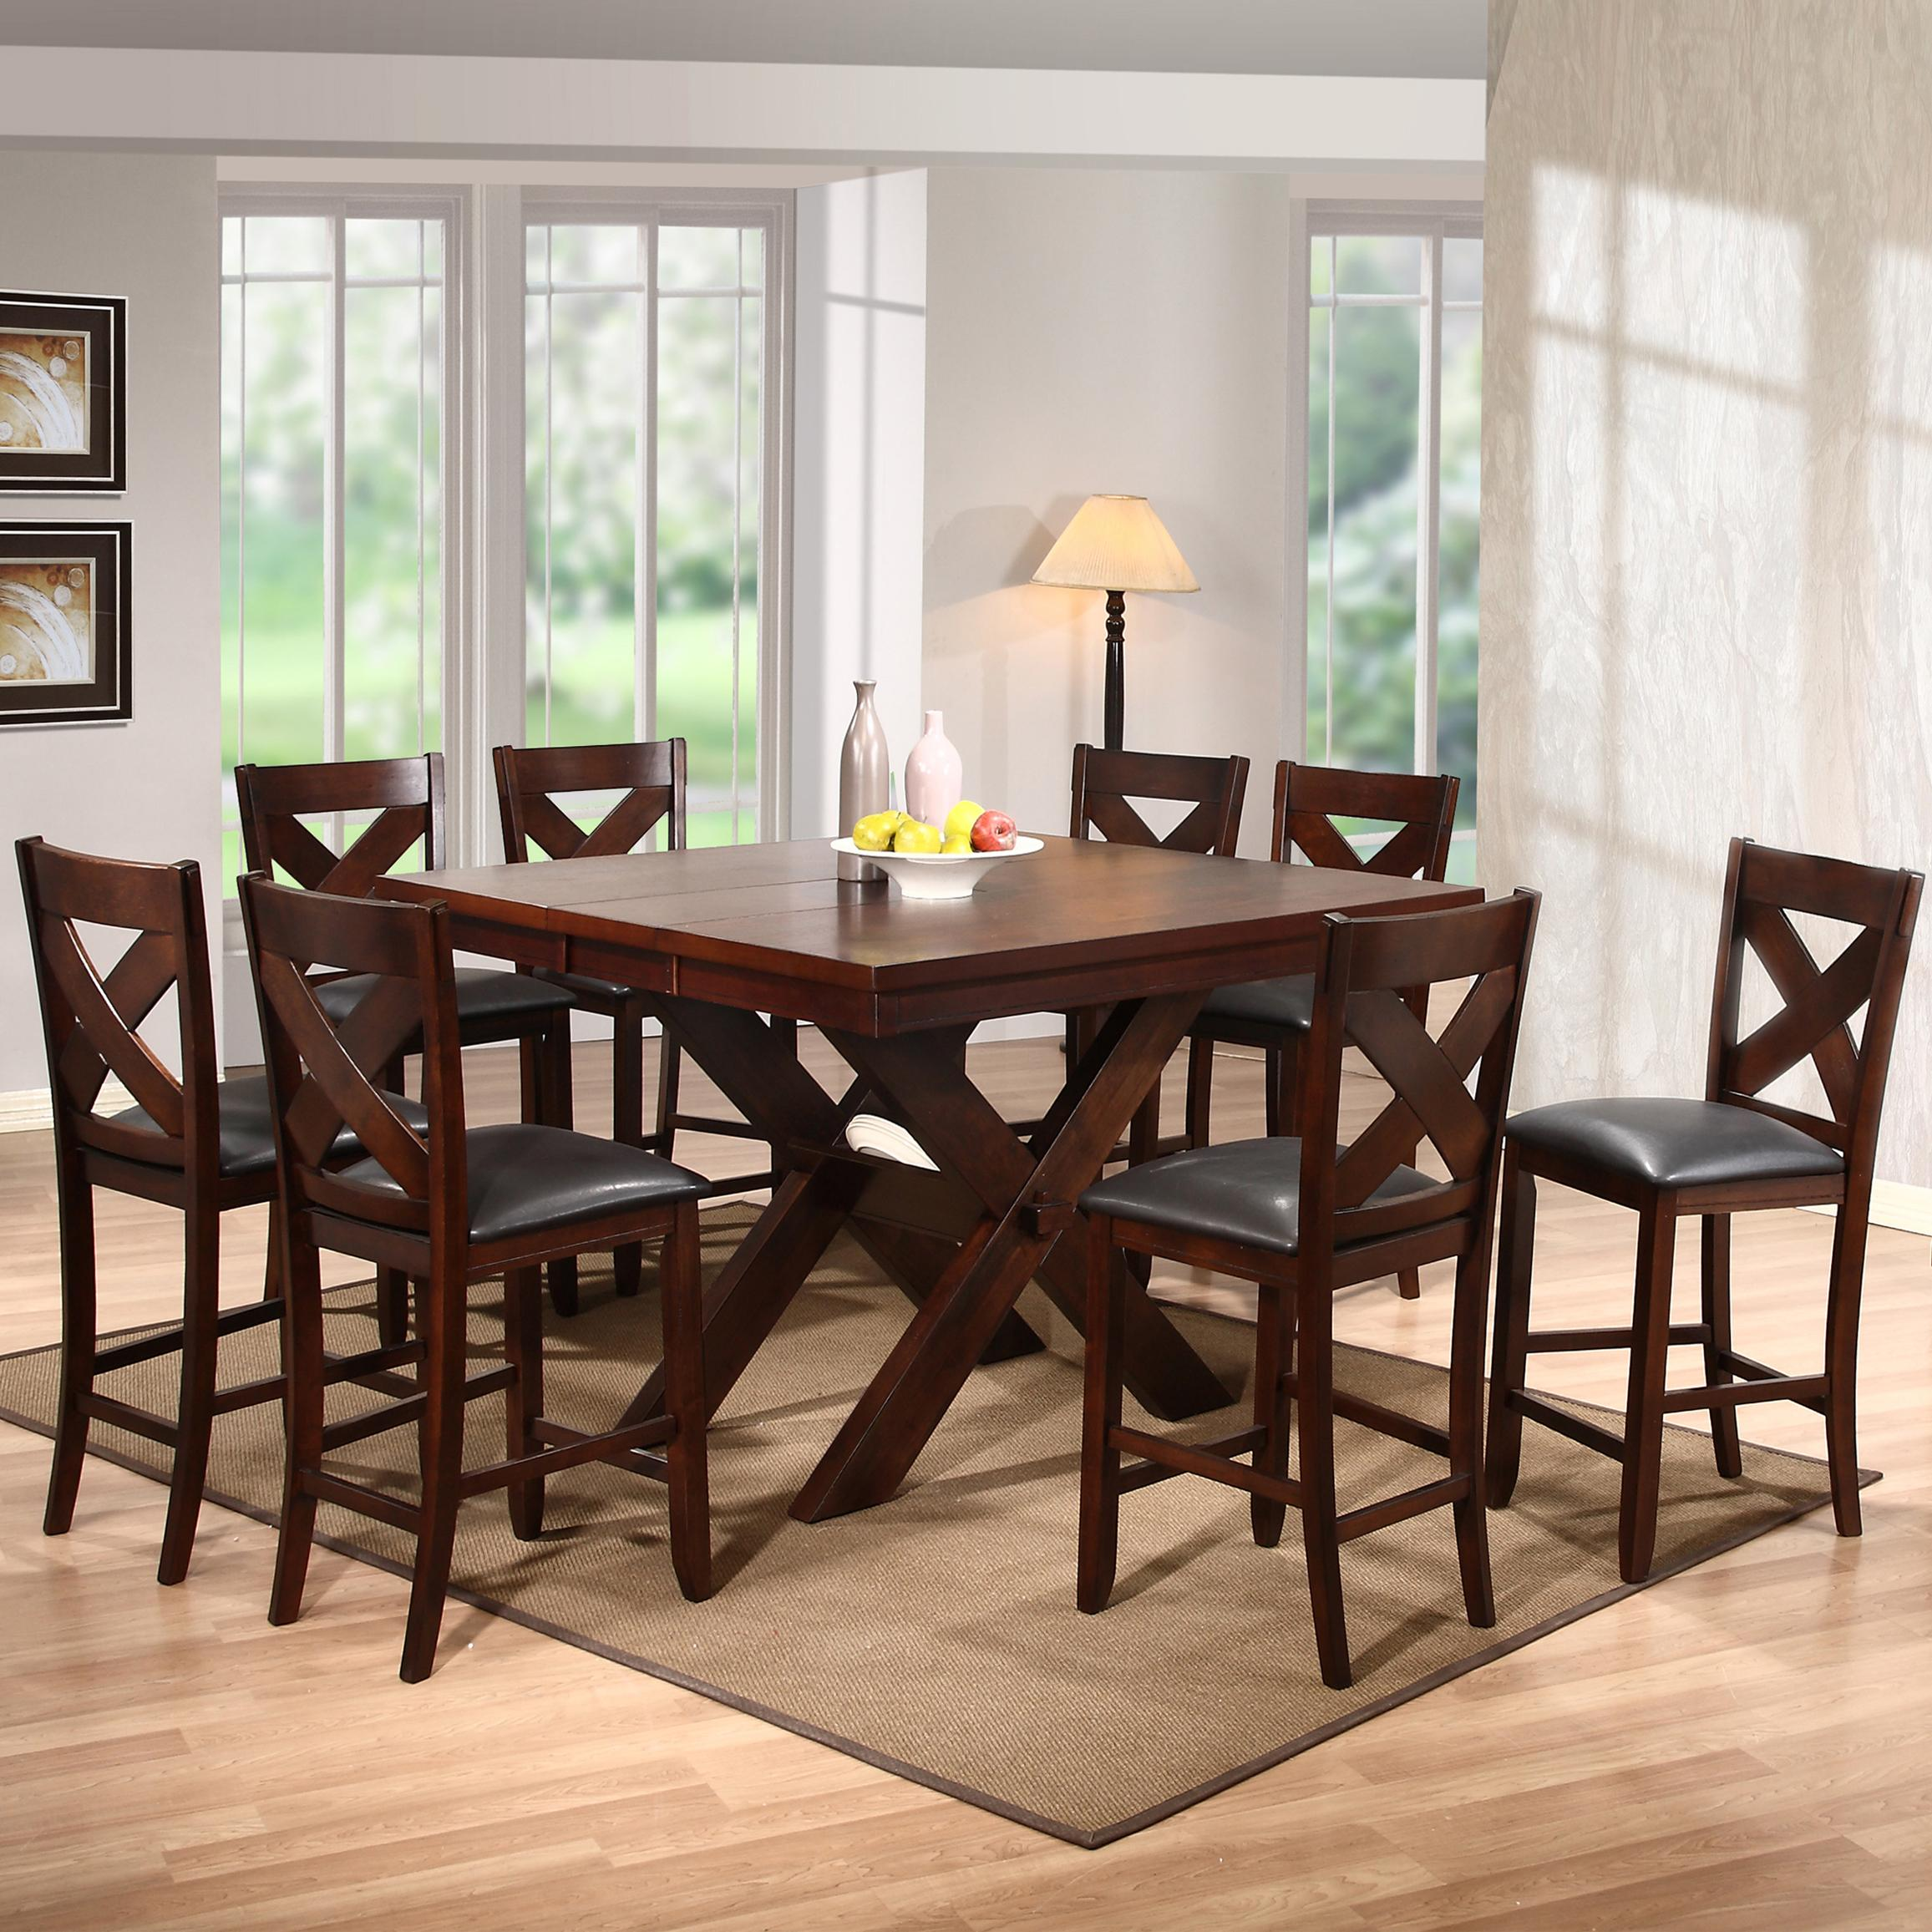 Holland House 1950 Dining Extension Counter Height Table U0026 Chair Set